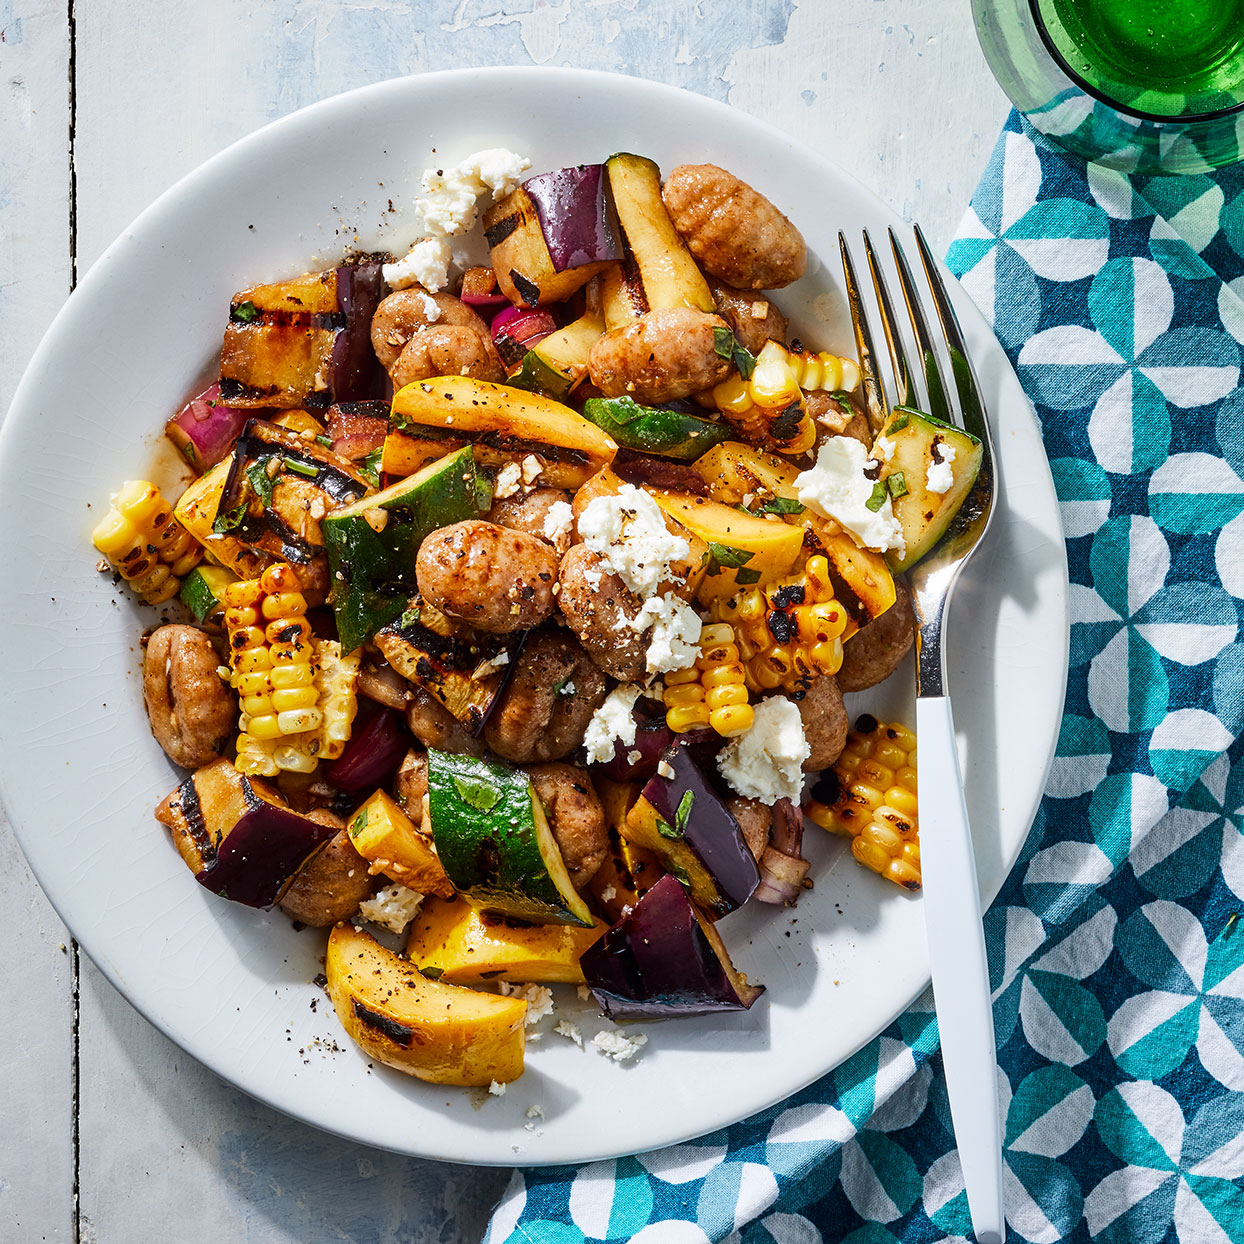 This riff on pasta salad is best served warm while the gnocchi are nice and tender. Plus, the grilled veggies taste extra-good fresh off the fire in this easy gnocchi recipe. Source: EatingWell Magazine, June 2020